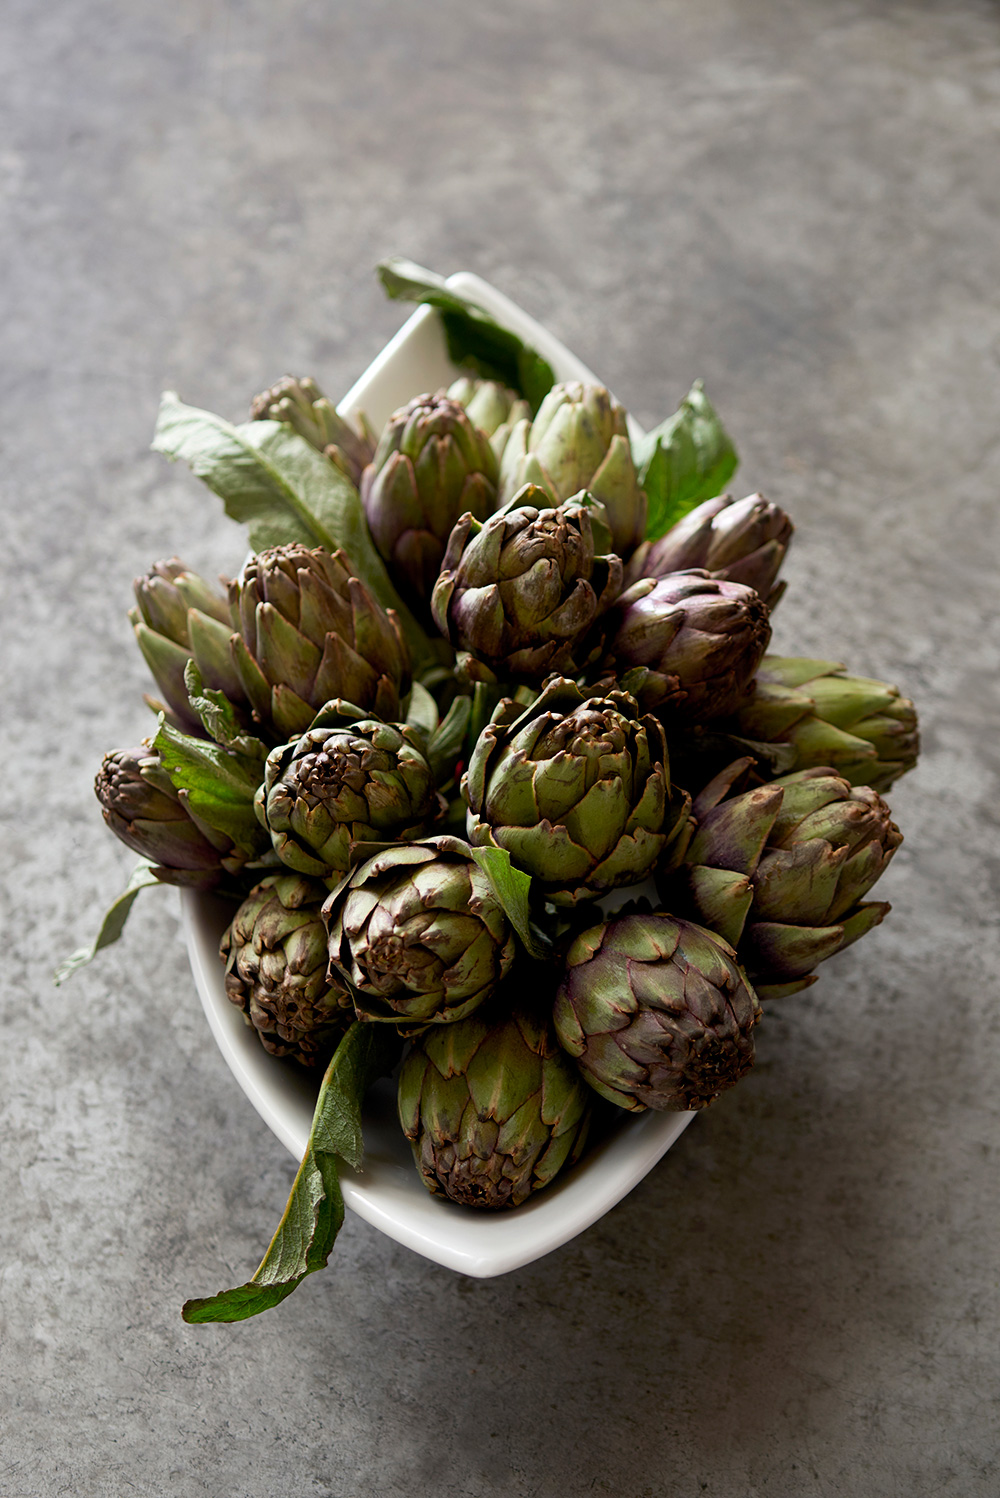 Bar-A-Thym-French-Restaurant-Artichokes.jpg